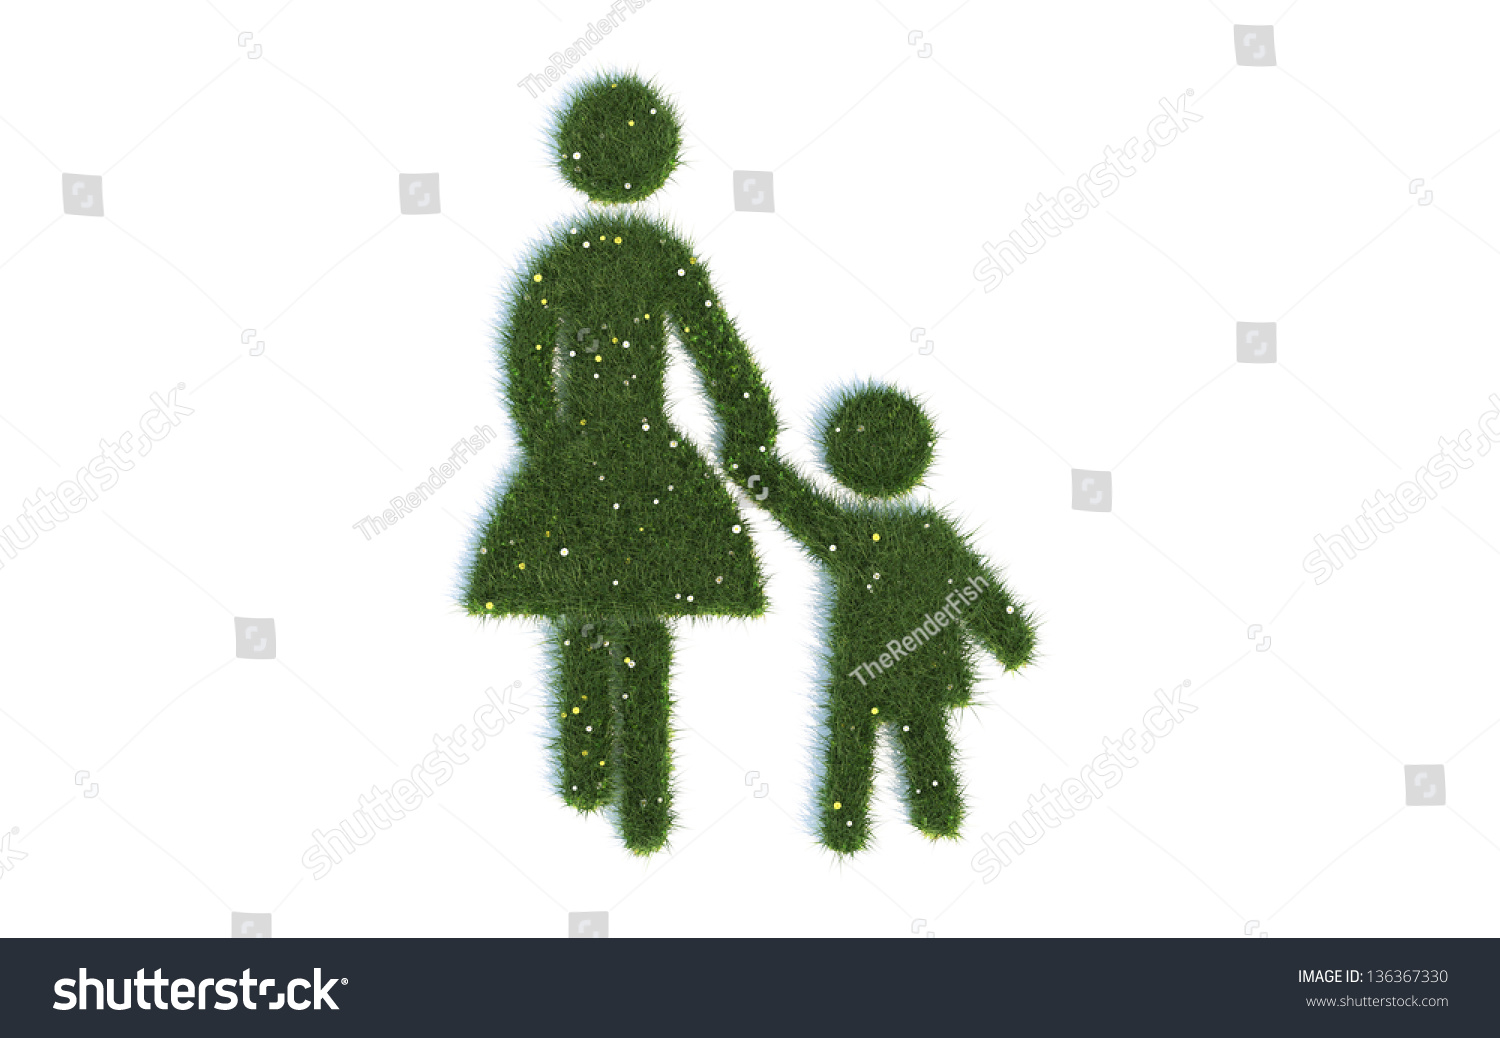 Mother Child Series Symbols Out Realistic Stock Illustration